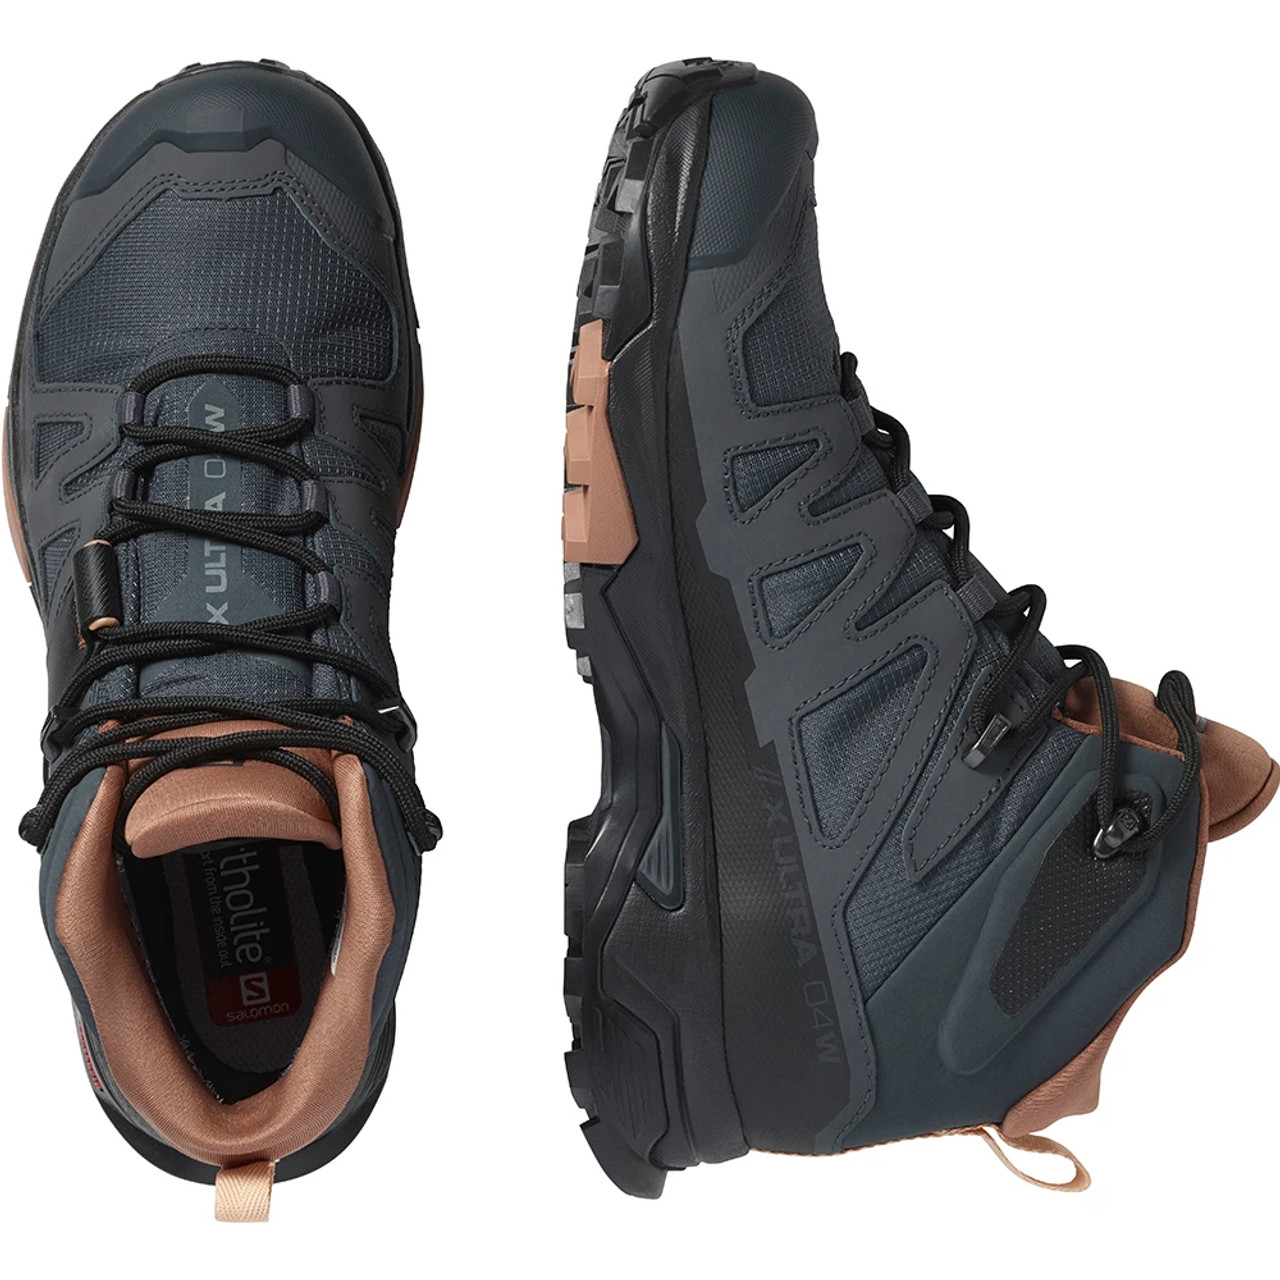 Salomon X Ultra 4 Mid GTX - WMS Online at Mountain Mail Order South Africa - Top & Side